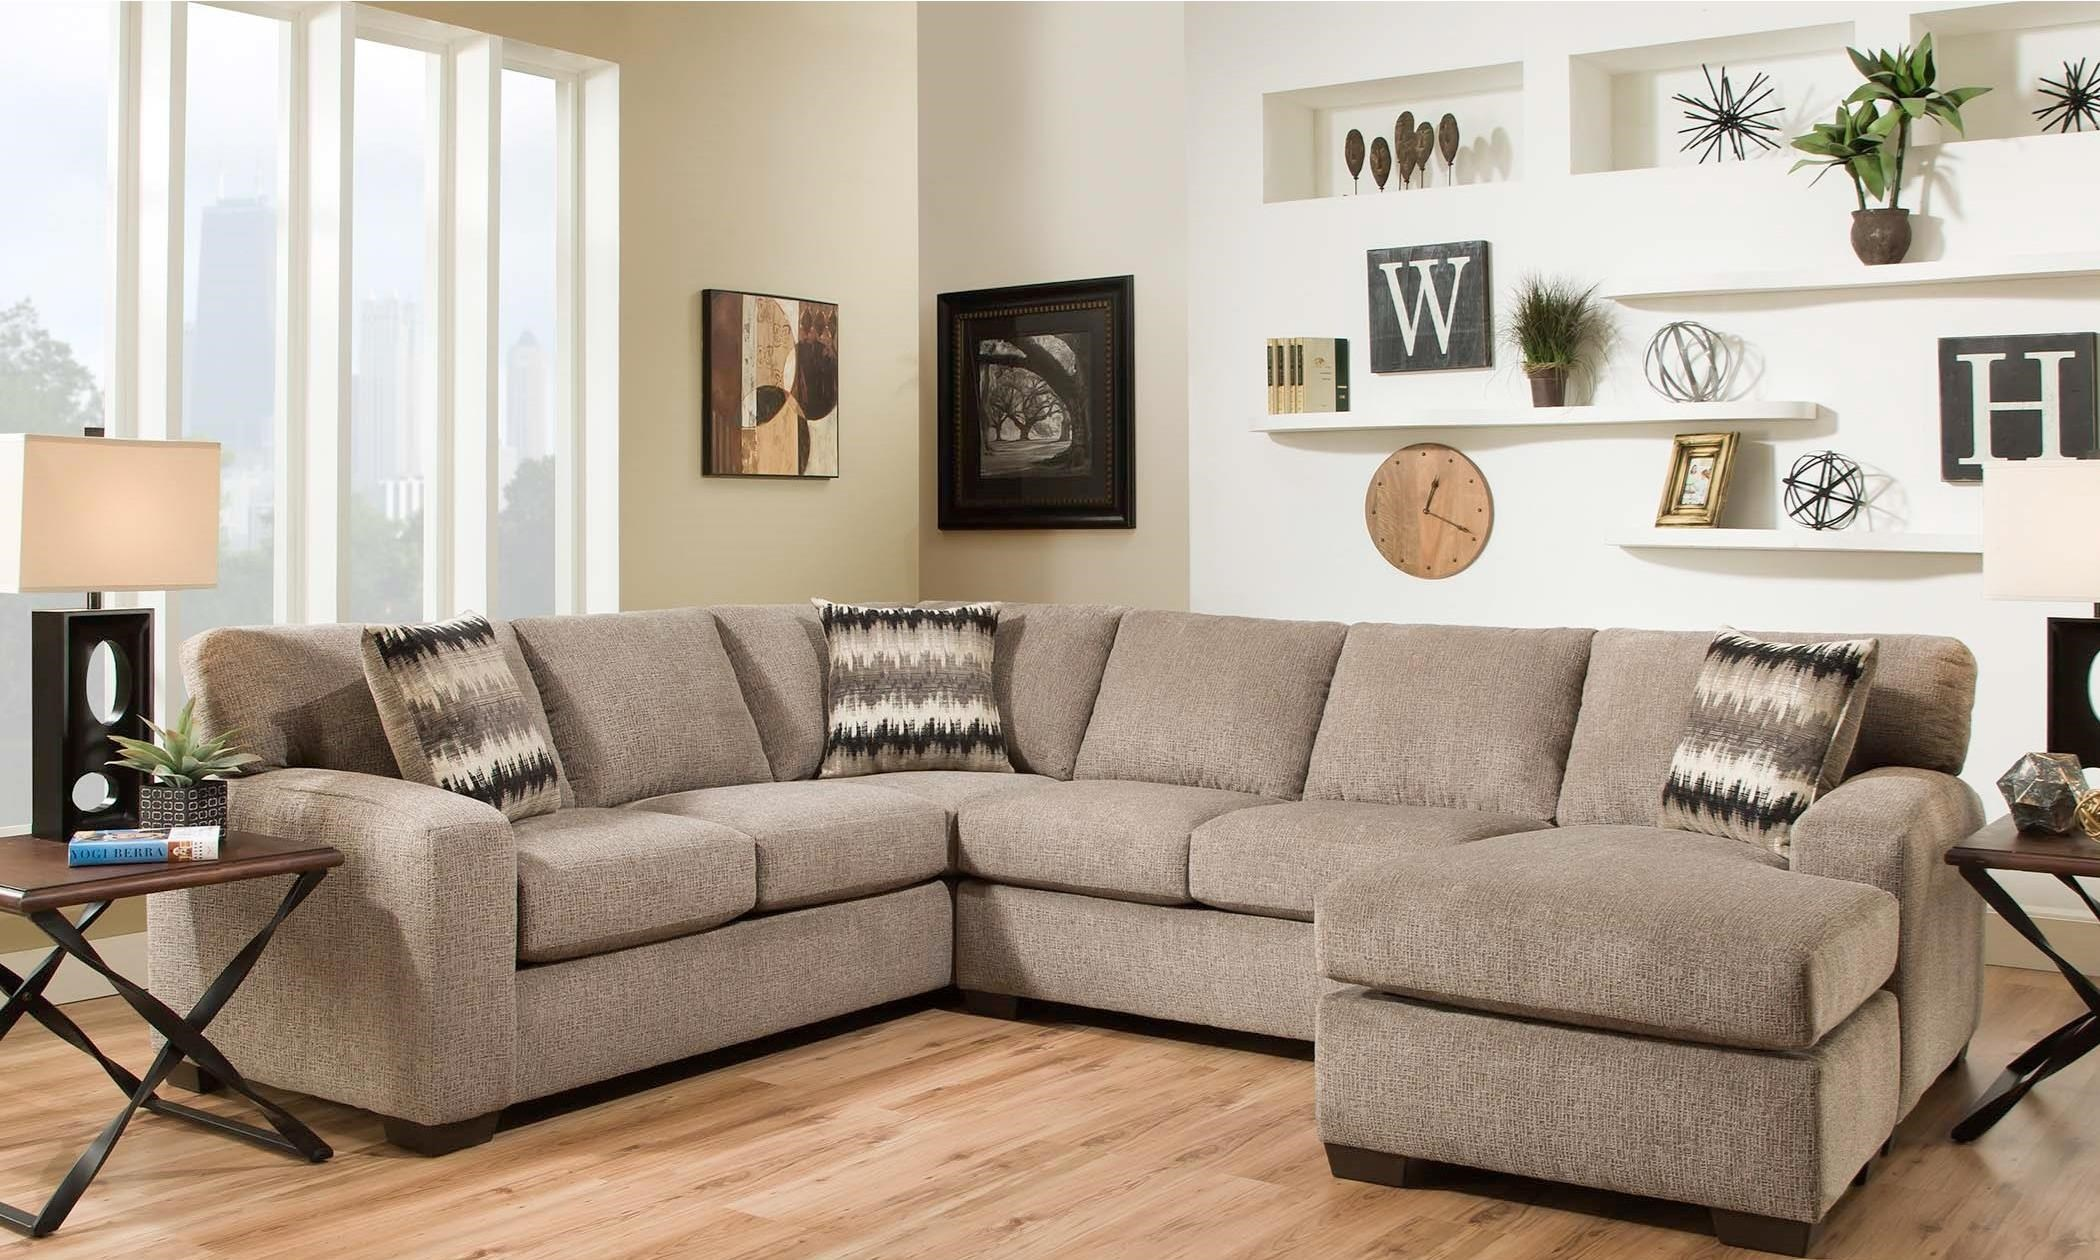 American Furniture 5250 Sectional Sofa Seats 5 Miskelly Furniture Sectional Sofas